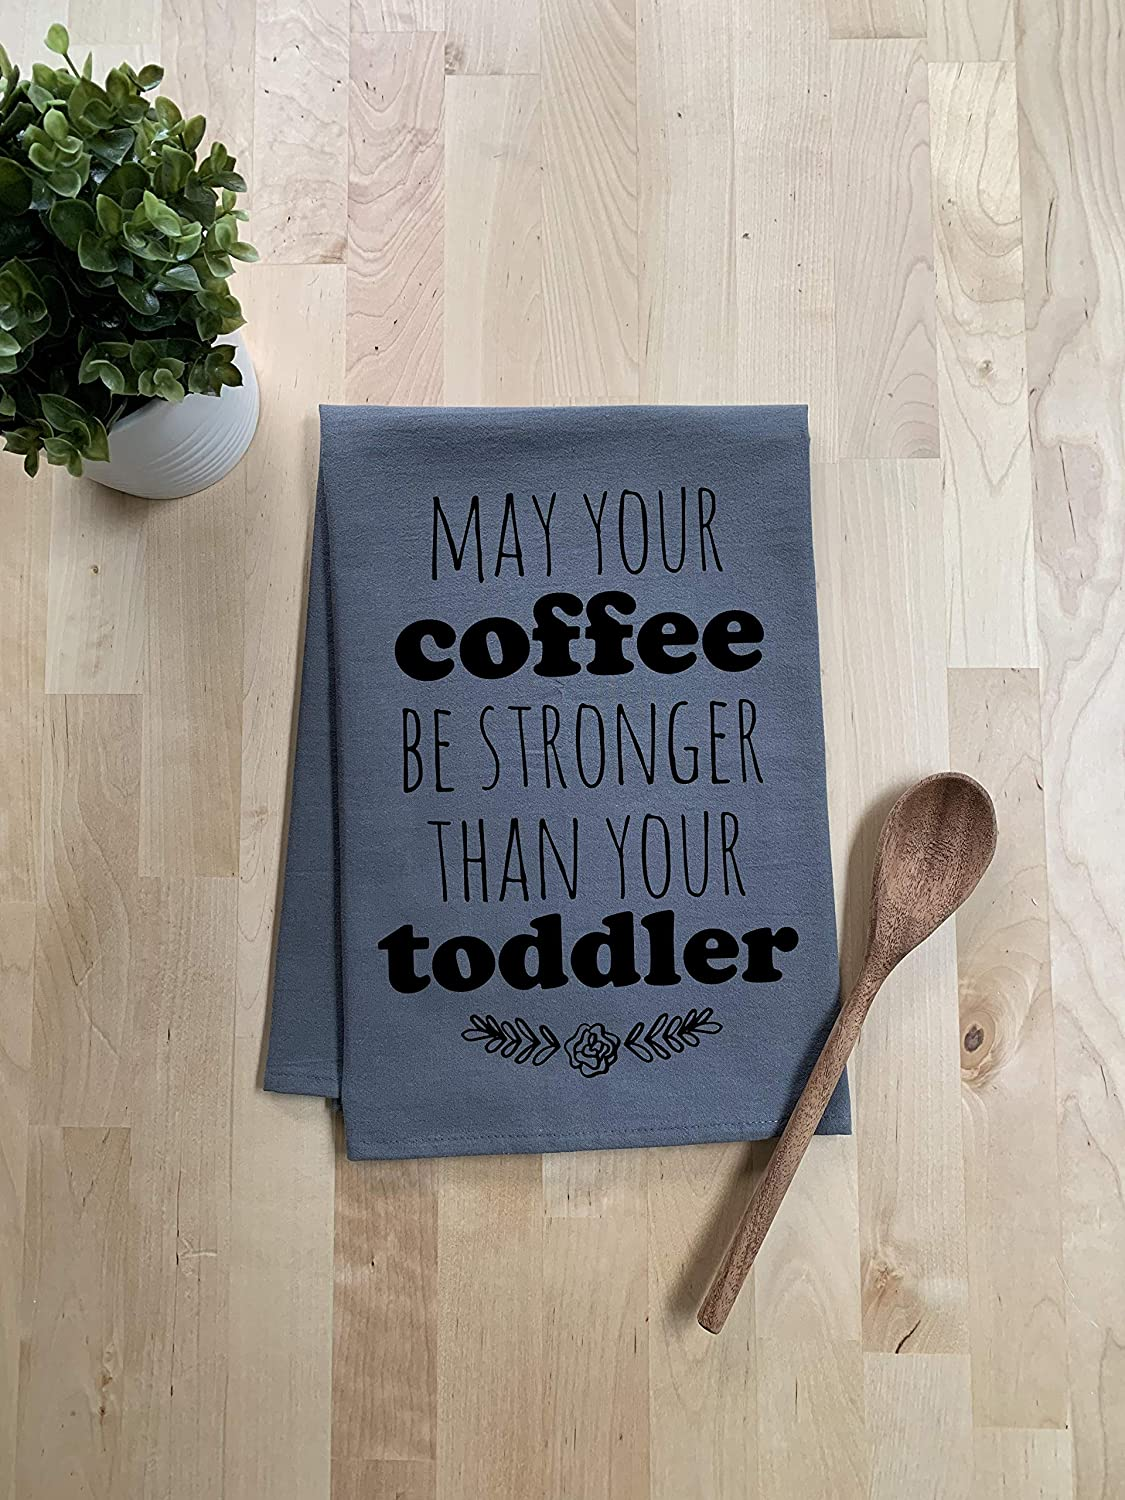 Funny//Sweet Kitchen Cloth ~ Funny Dish Towel ~ May Your Coffee Be Stronger Than Your Toddler Tea Towel ~ Gray